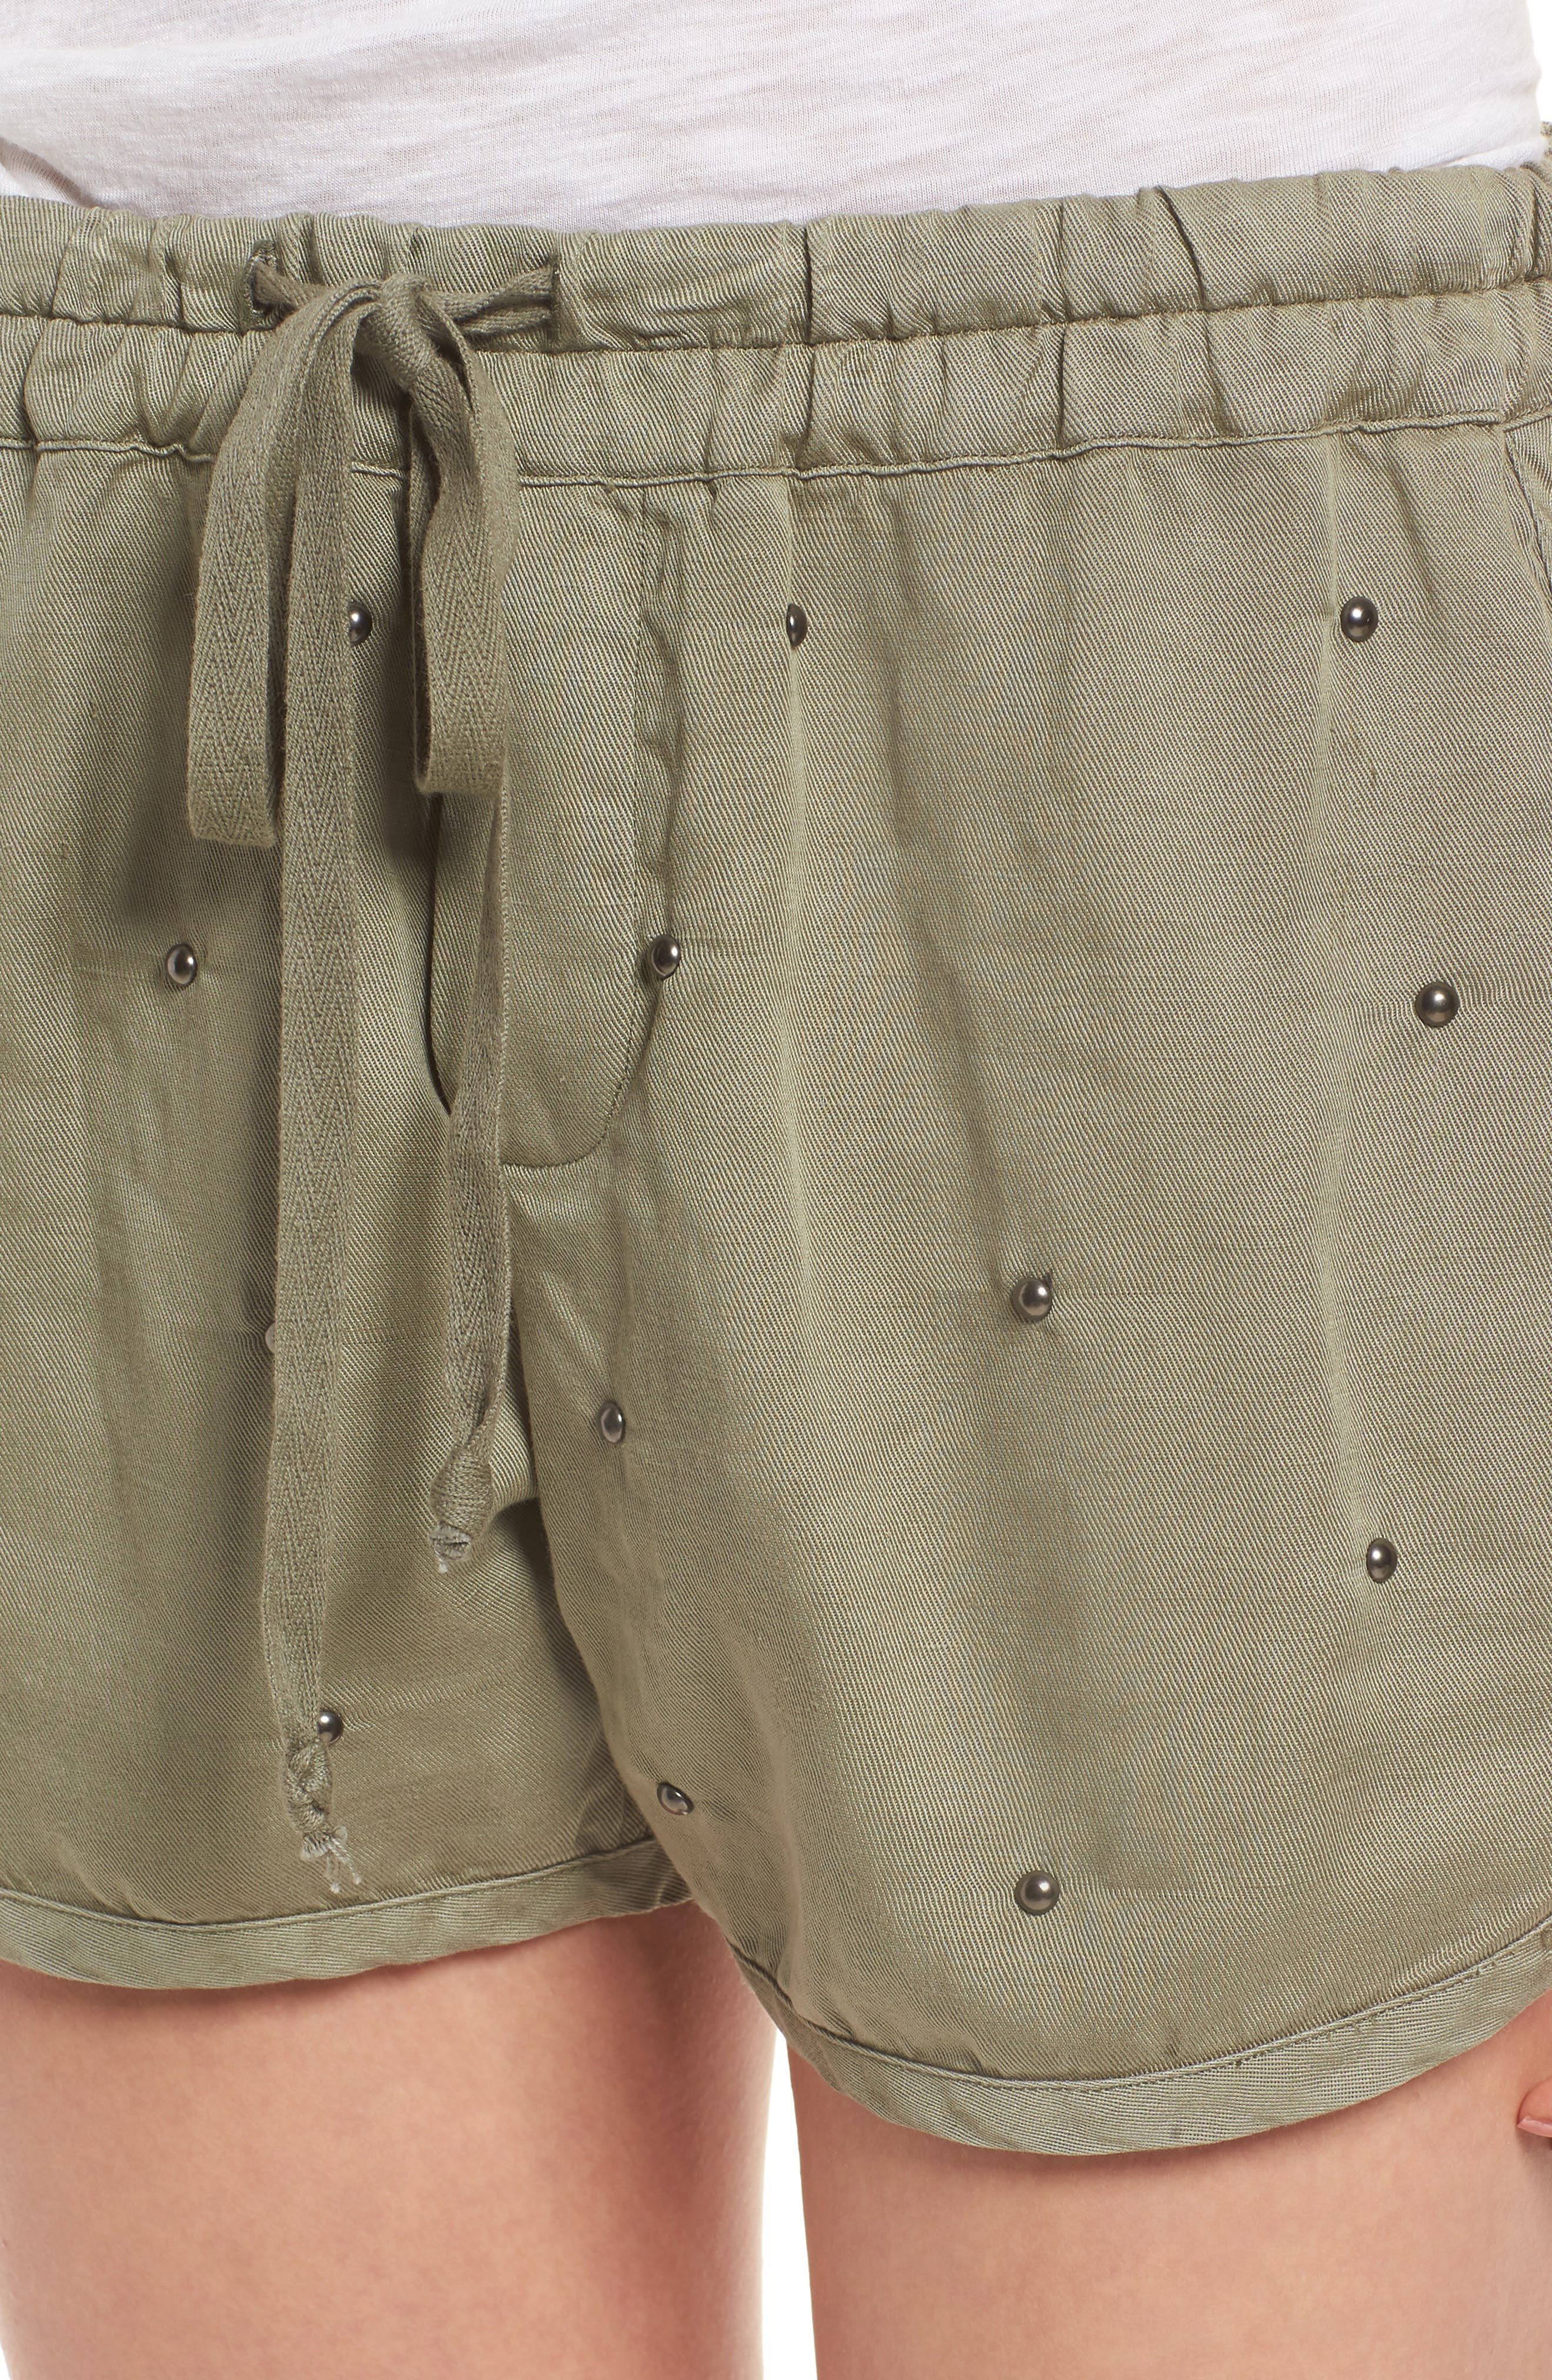 Thatcher Drawstring Shorts,                             Alternate thumbnail 4, color,                             Sage Studded